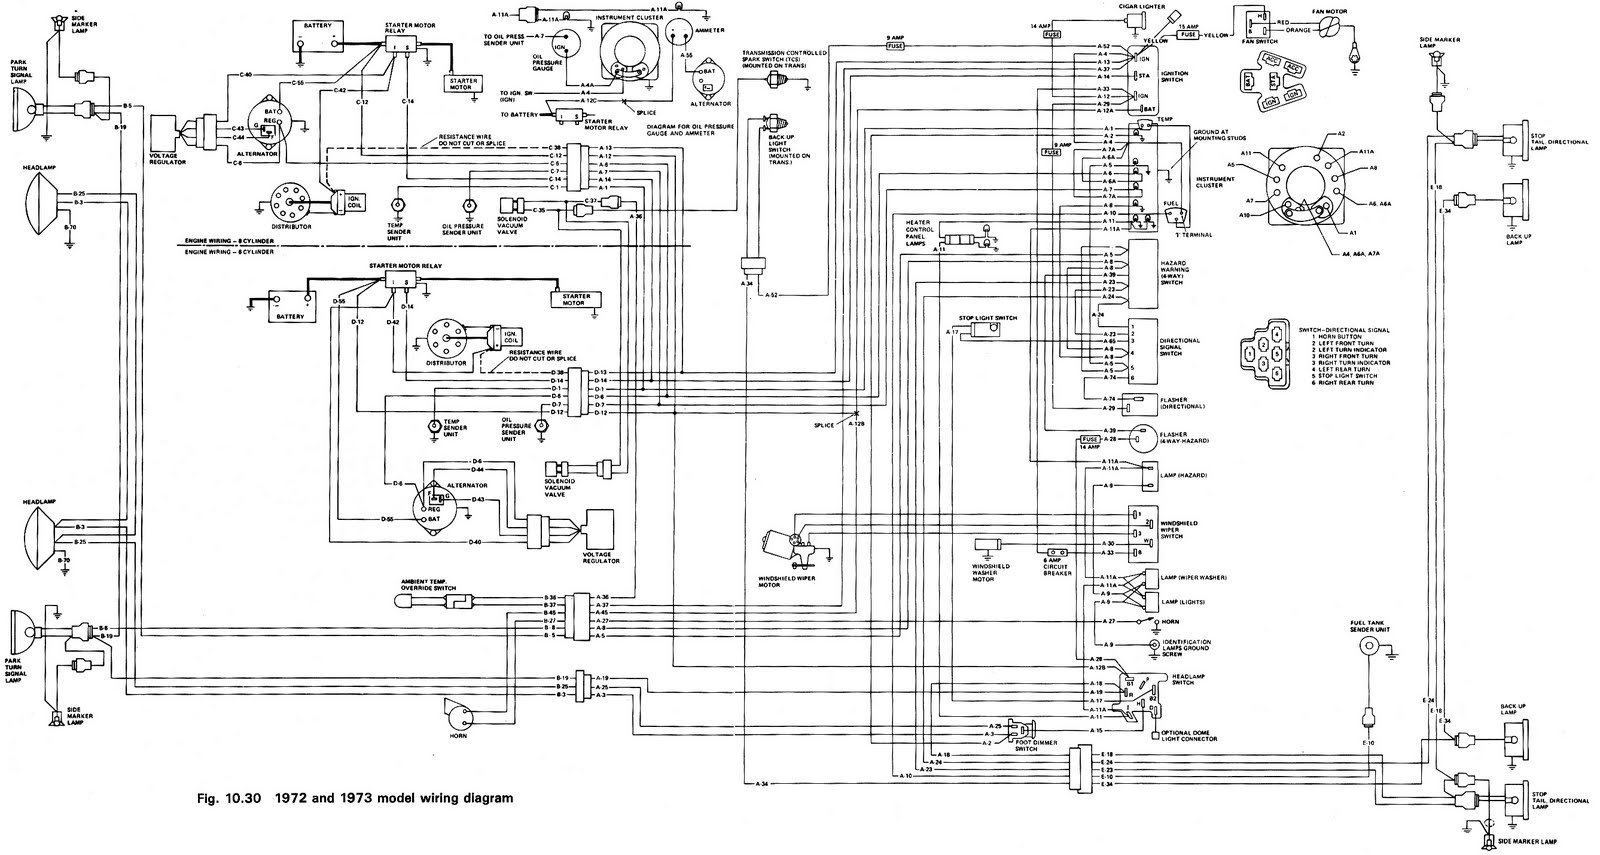 Jeep Cj5 Wiring Diagram Pictures To Pin